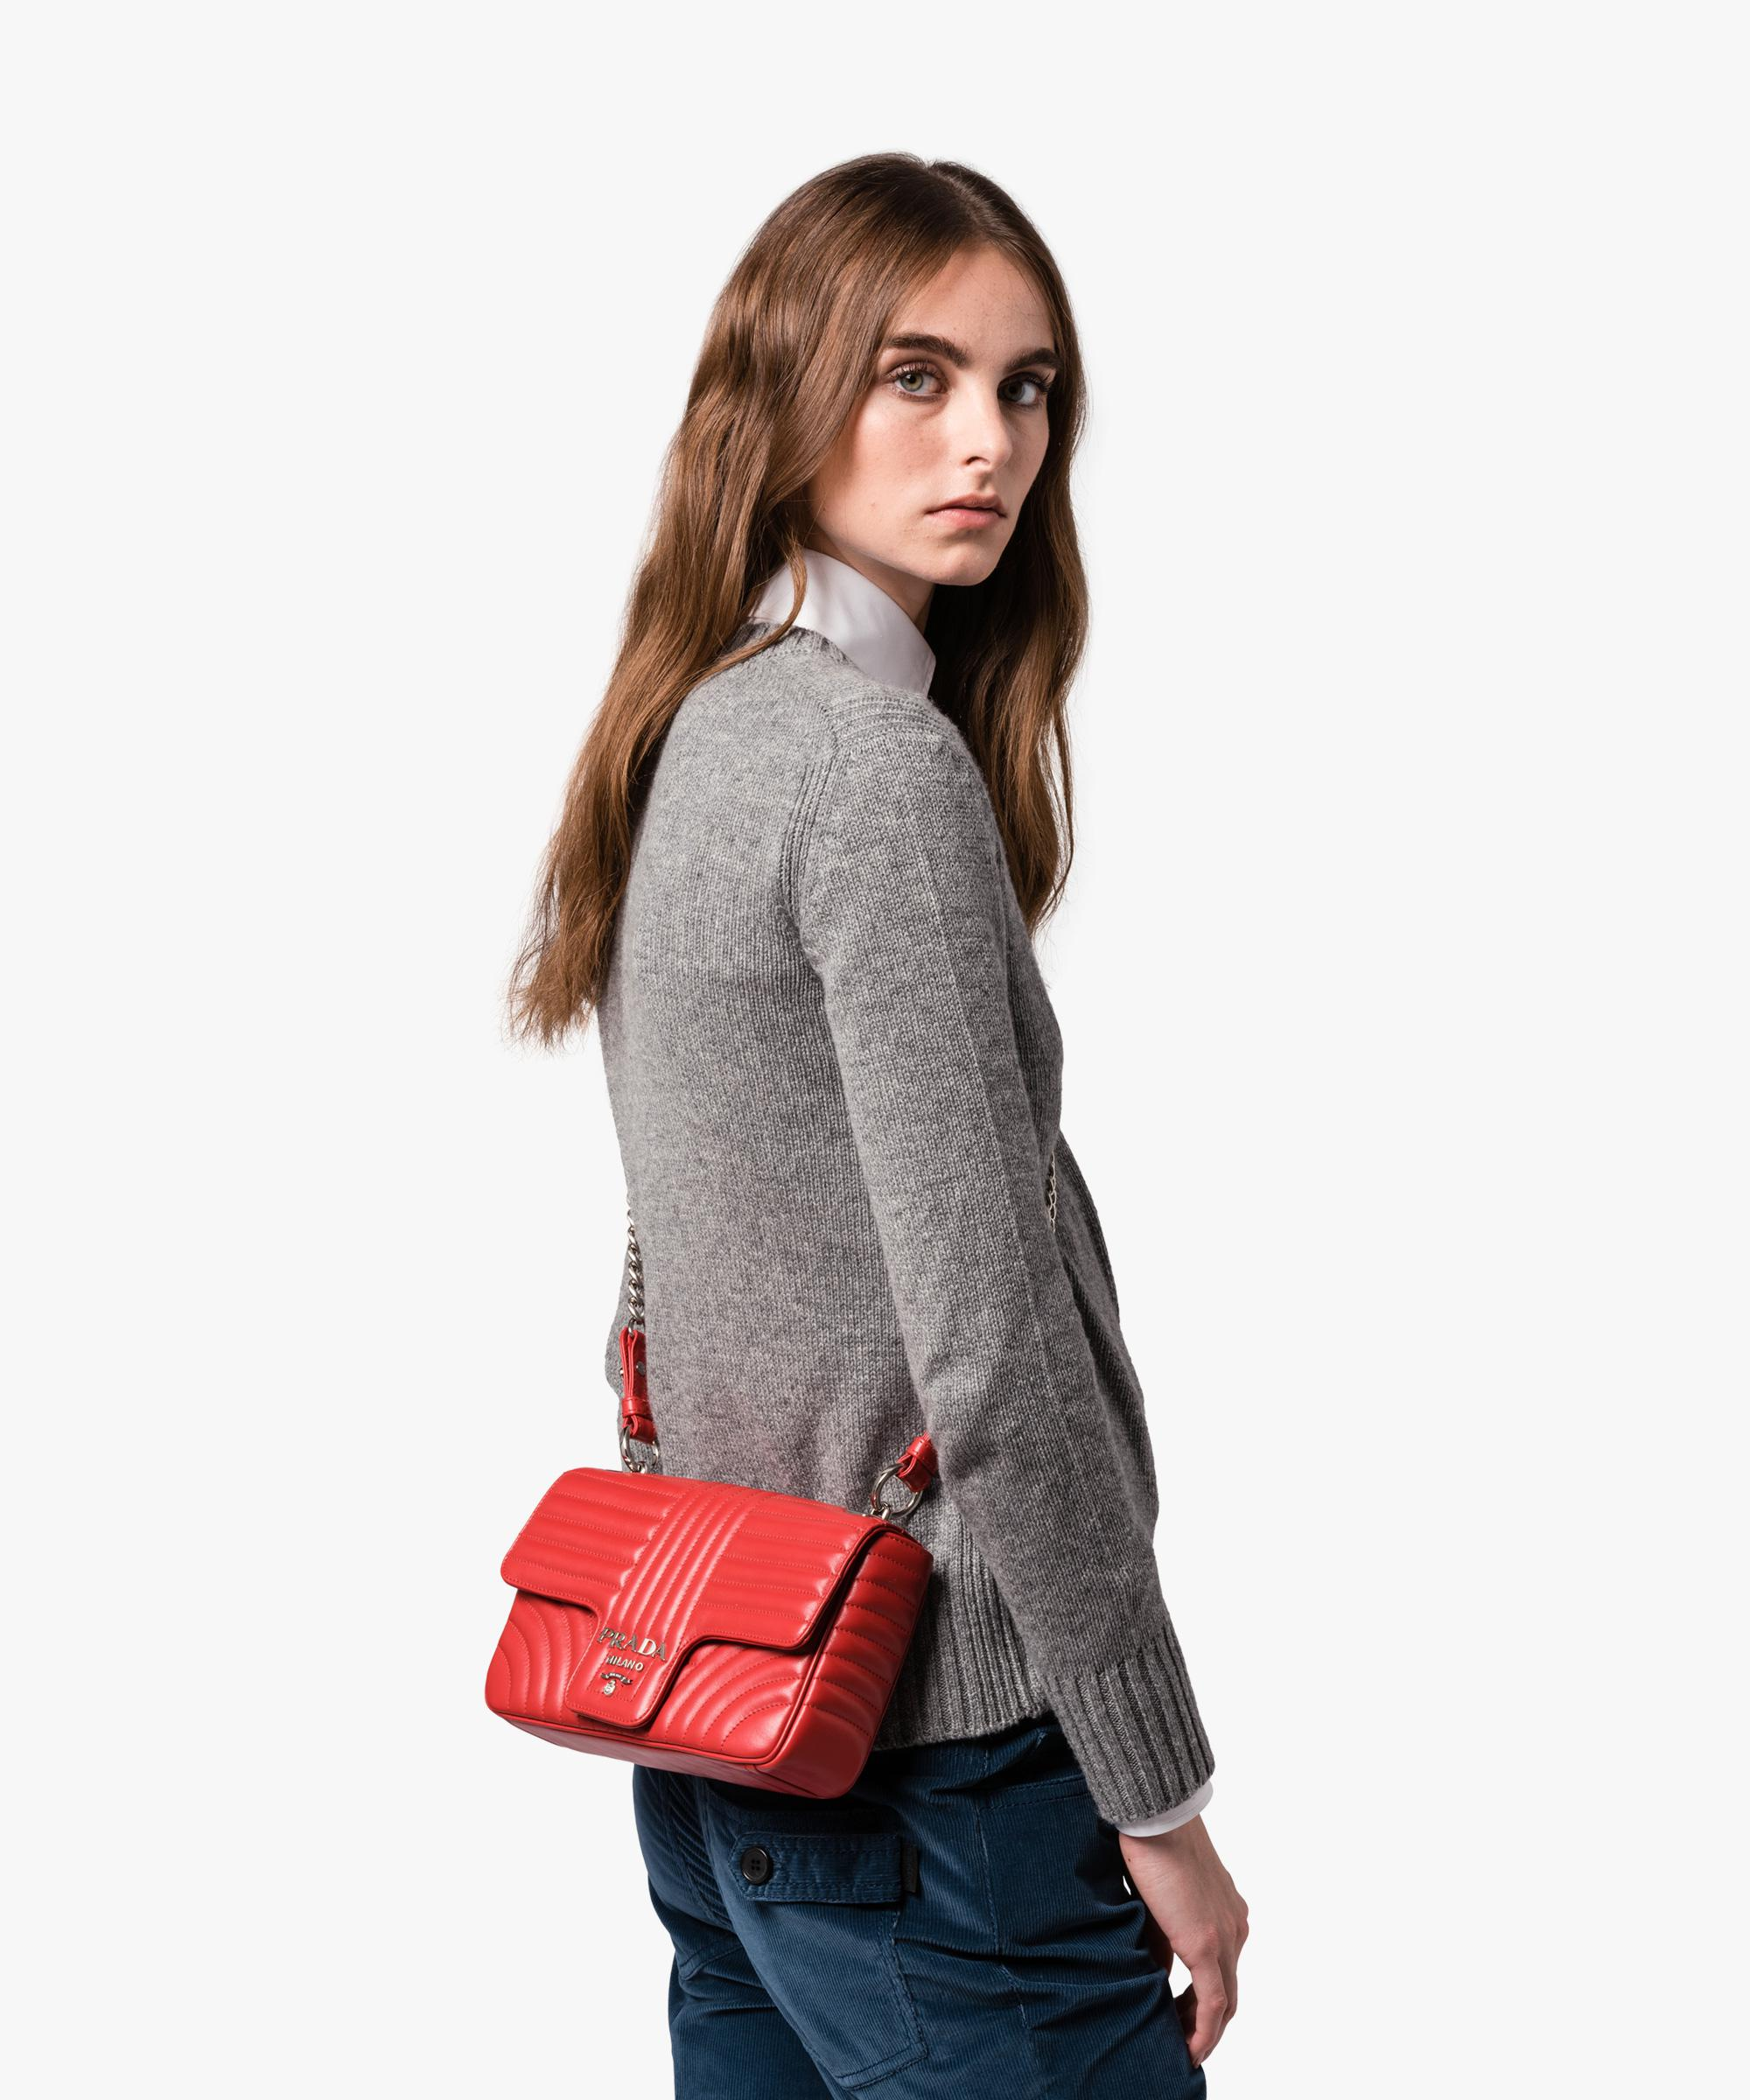 63e5649a8c3750 Prada Diagramme Leather Shoulder Bag in Red - Lyst